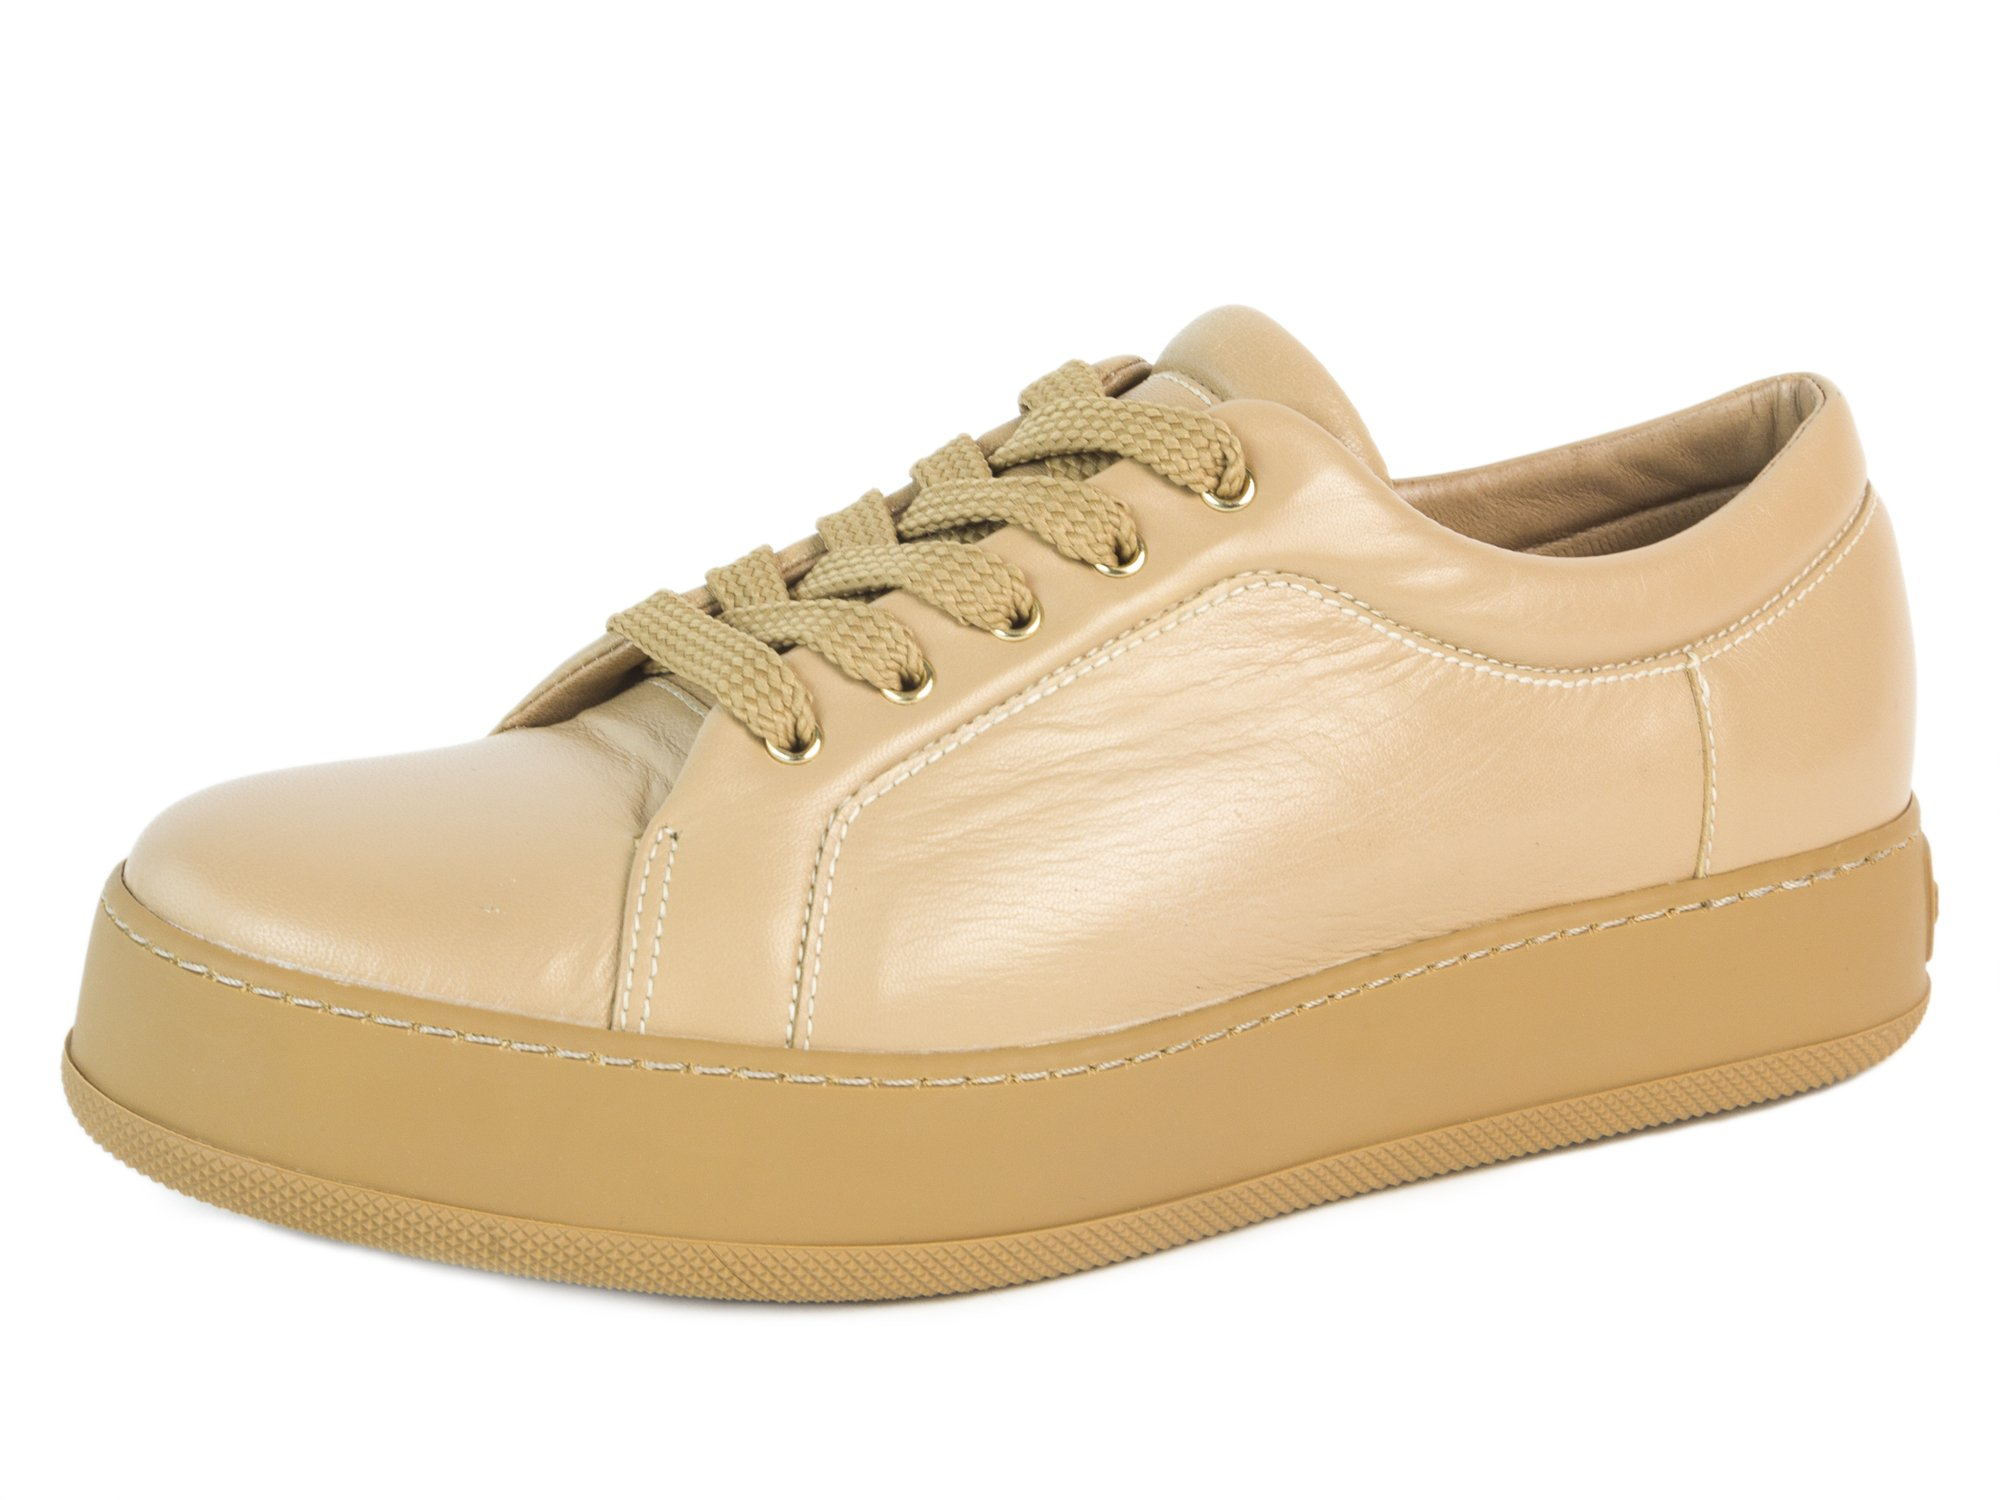 MaxMara Women's MM47 Leather Lace-up Sneakers US 7/IT 37 Camel